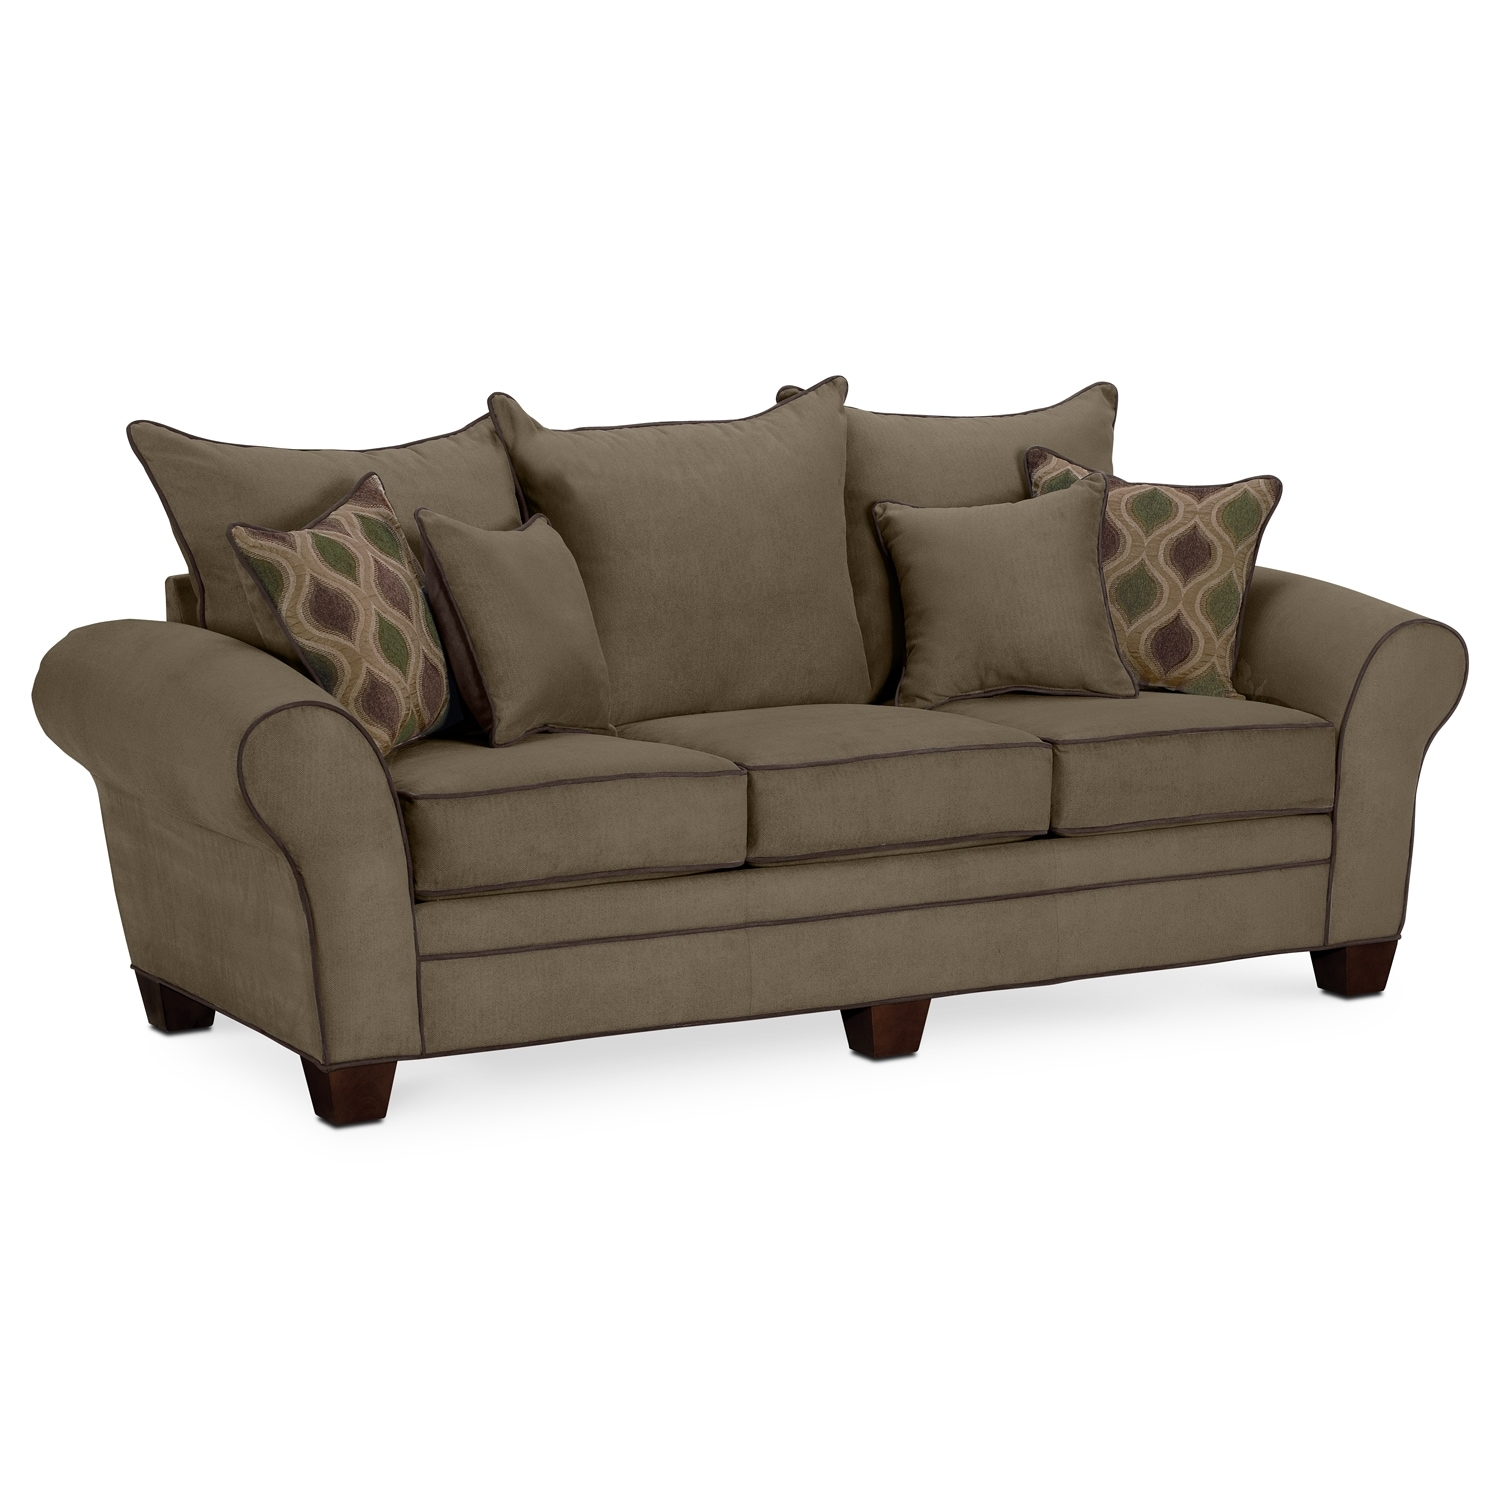 Was $499.99 Today $449.99 Rendezvous Sofa   Olive By Kroehler